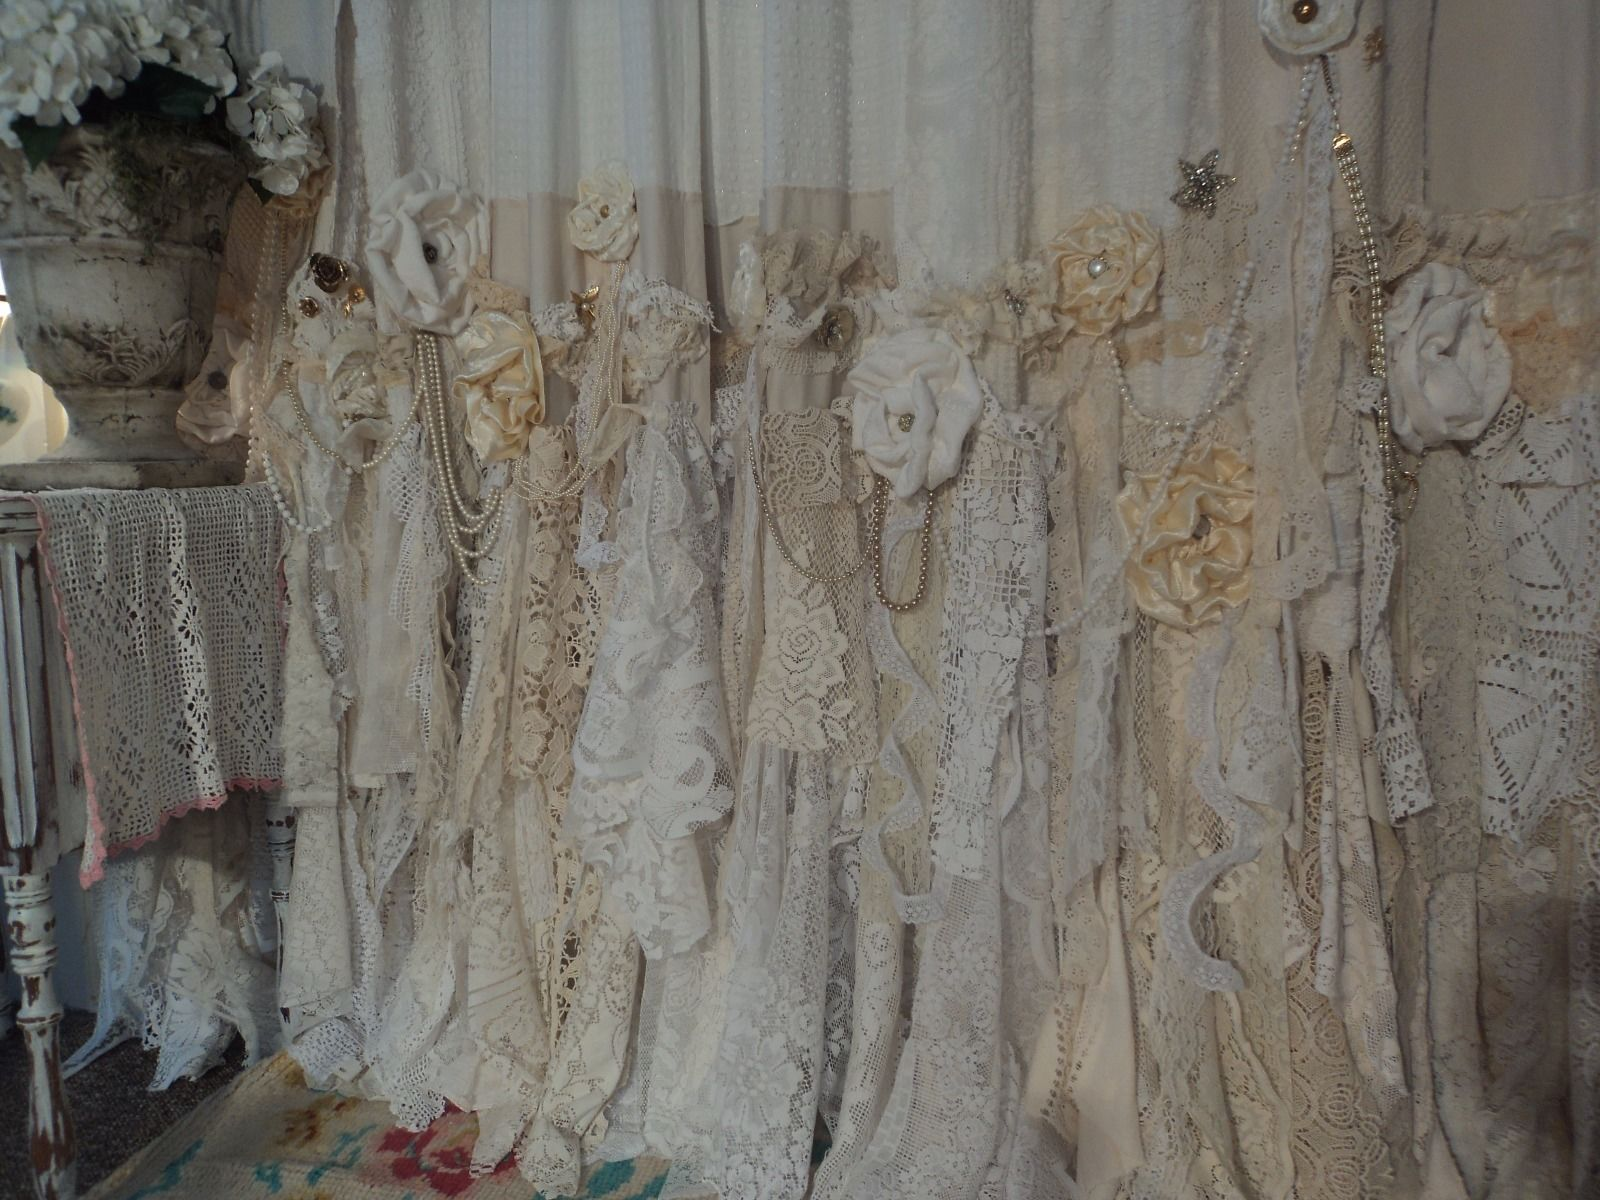 Handmade Vintage Lace Curtains 2 Curtain Panels 57x100 Boho Gypsy Jewelry Tmyers